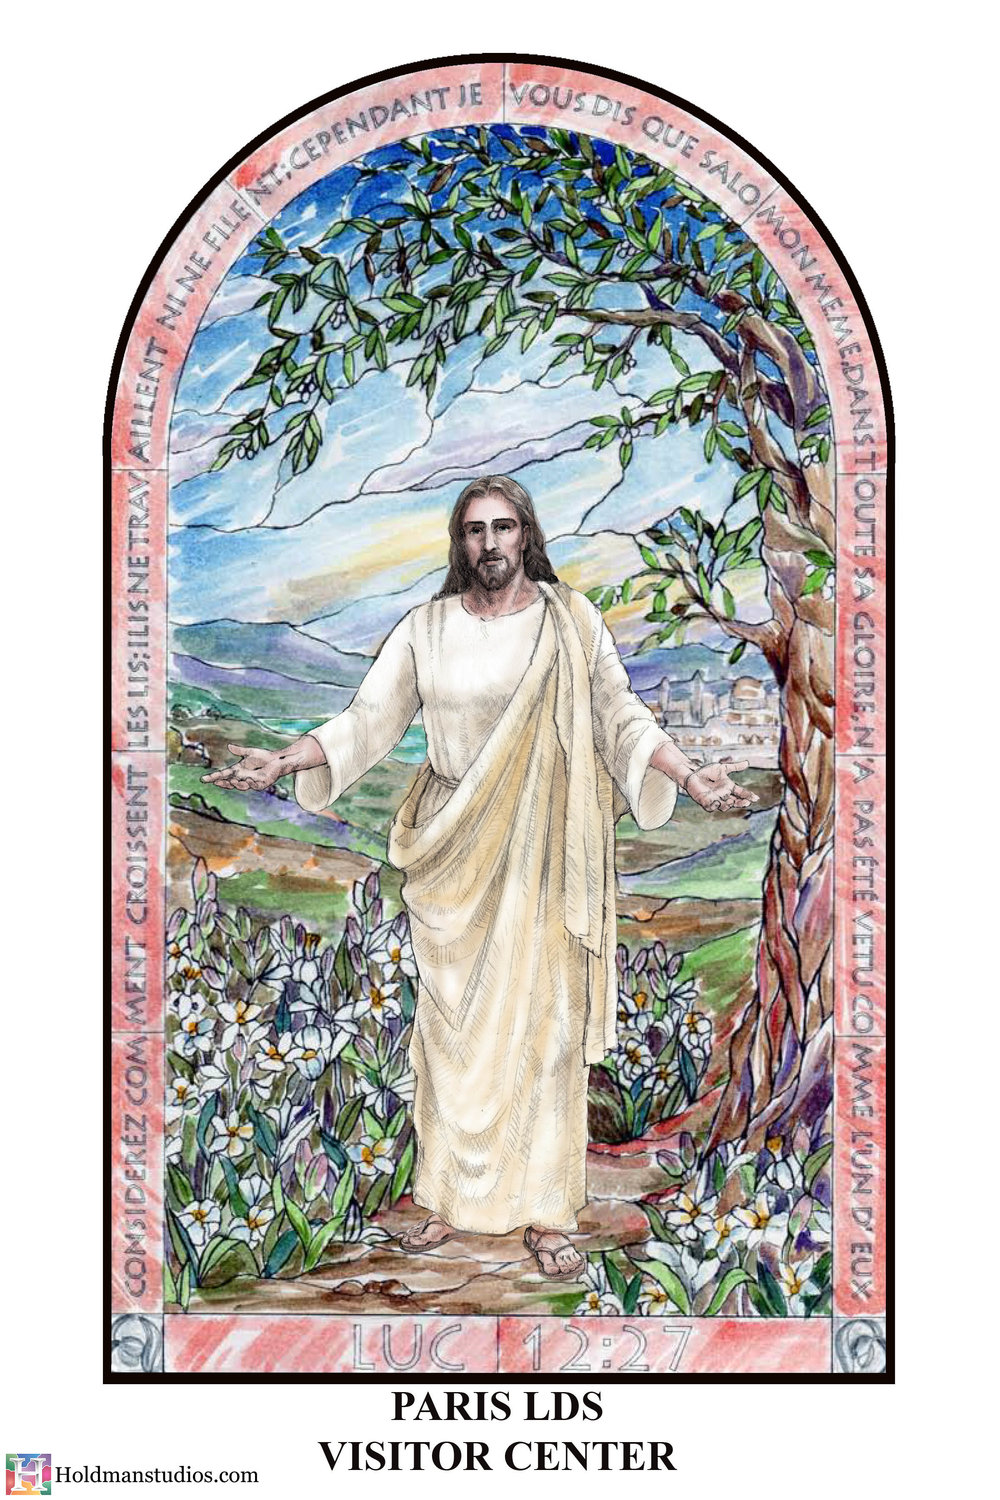 Holdman-Studios-Stained-Glass-Paris-LDS-Temple-Welcoming-Center-Jesus-Christ-Madonna-Lily-Flowers-Leaves-Tree-Sky-Sketch.jpg